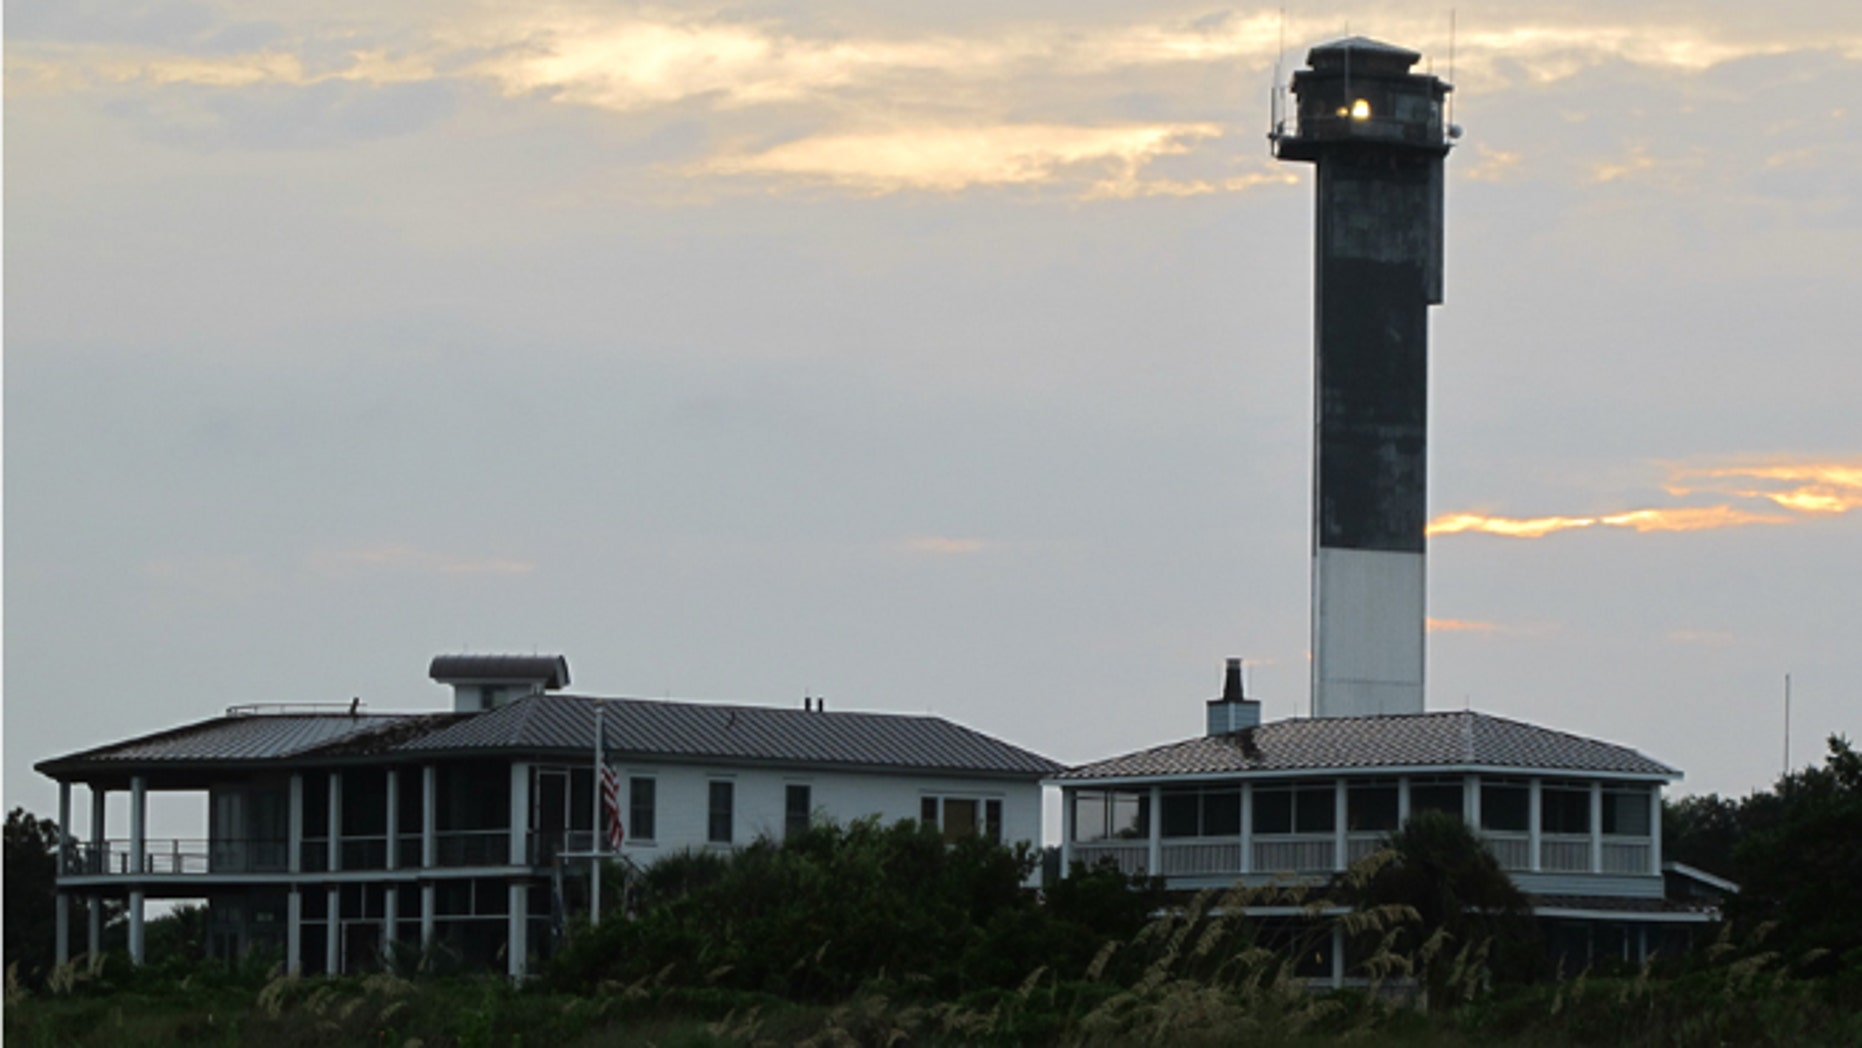 July 31, 2012: Charleston Light, the last major lighthouse built in the United States, is seen on Sullivans Island, S.C.